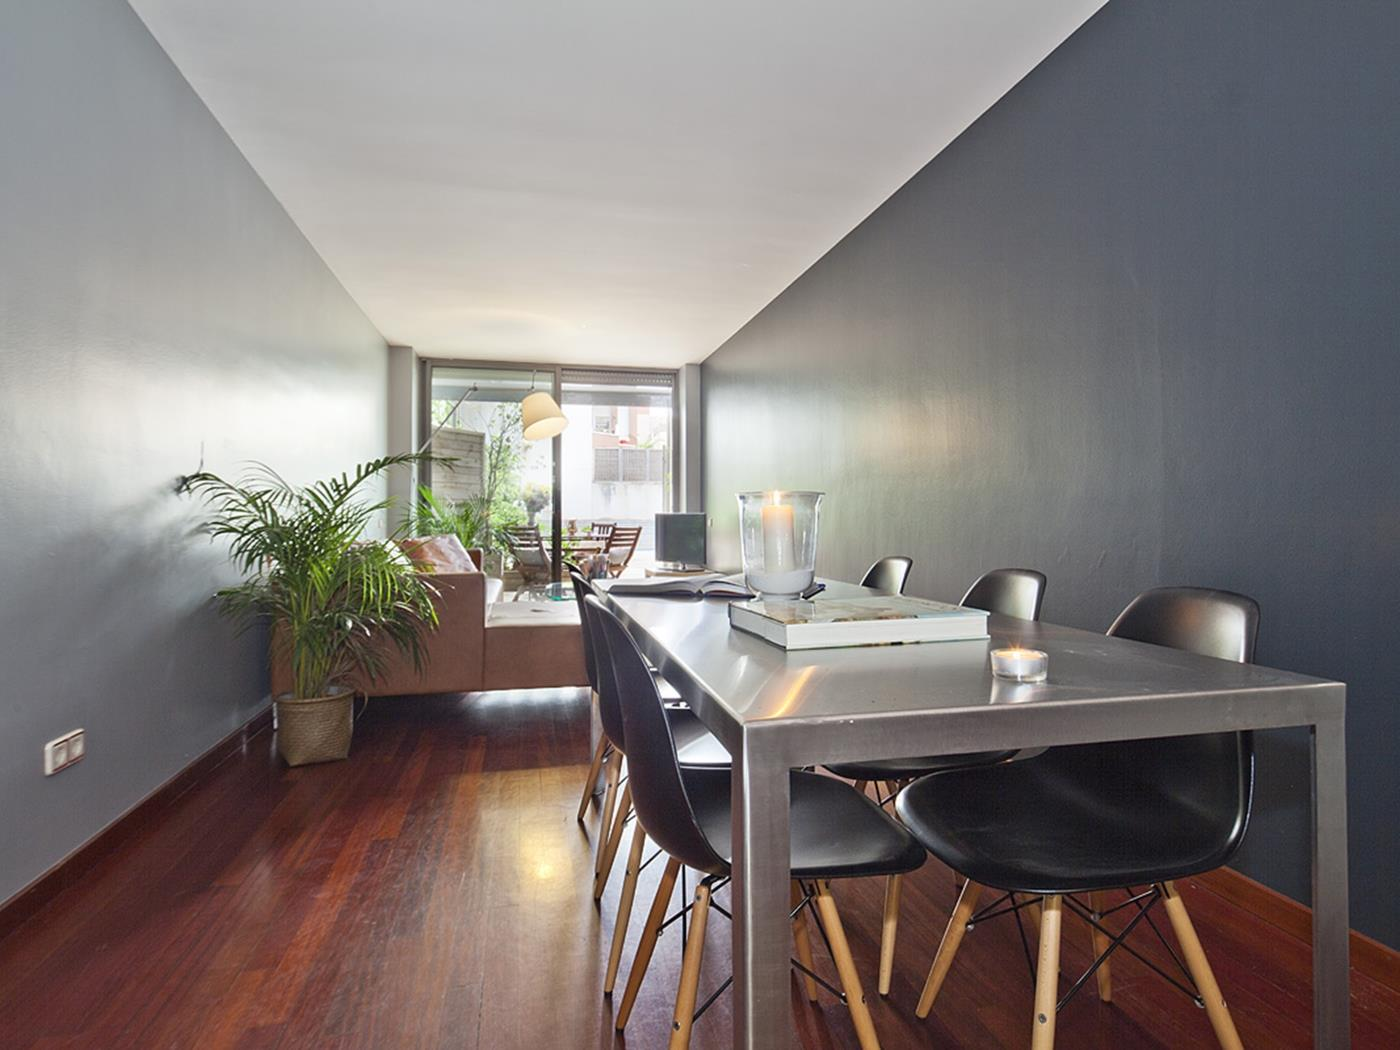 Student apartment rental in Barcelona very close to the centre with terrace - My Space Barcelona Apartments